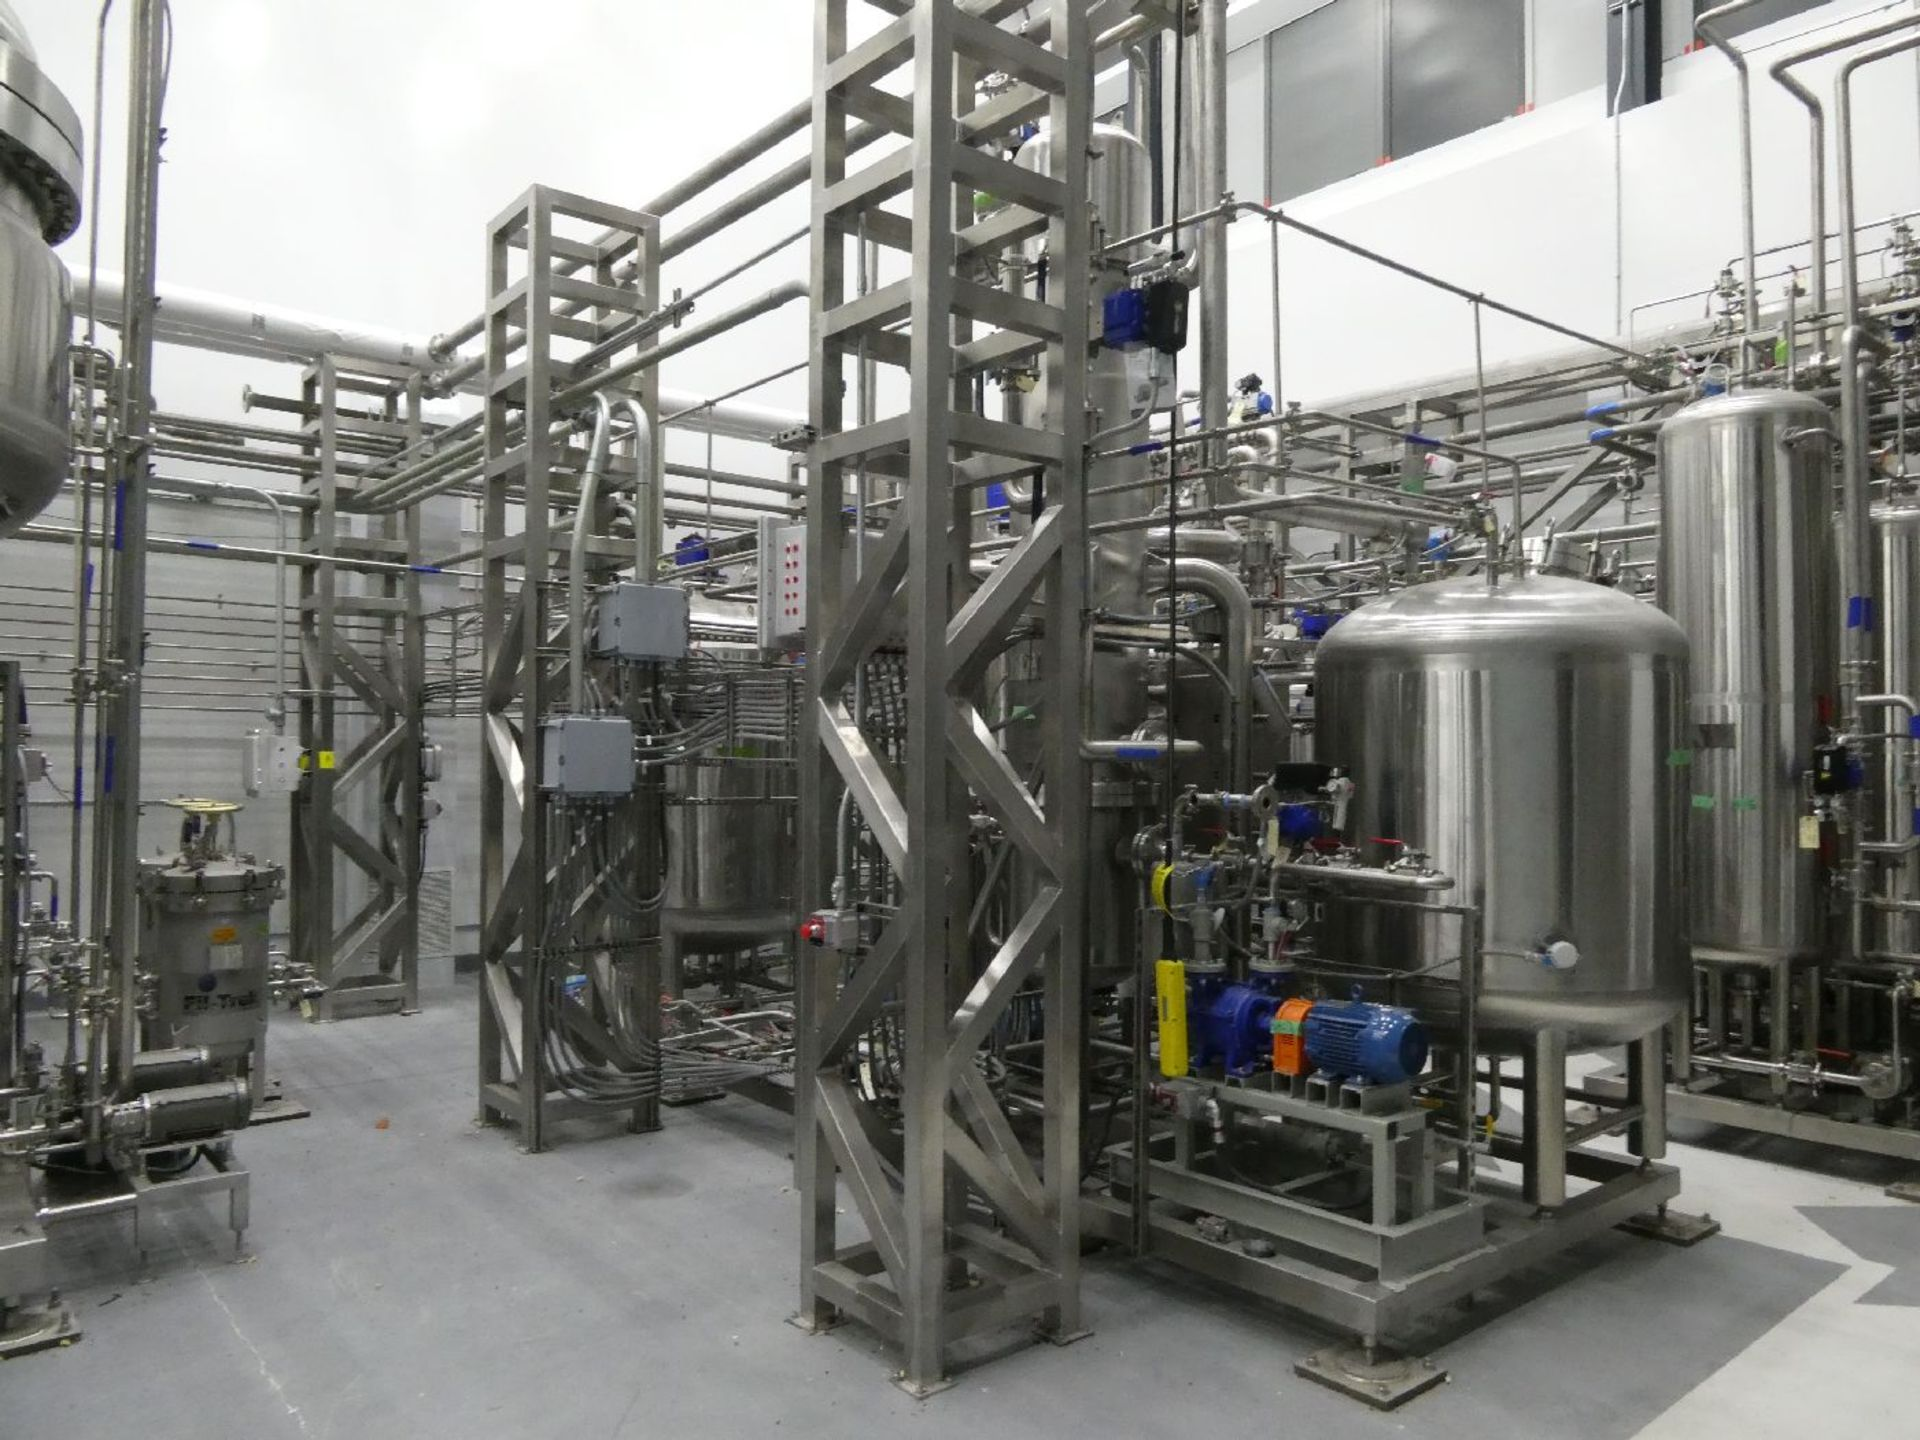 ROTAX Closed Loop Solvent Based Continuous Oil Extraction System - Image 20 of 68